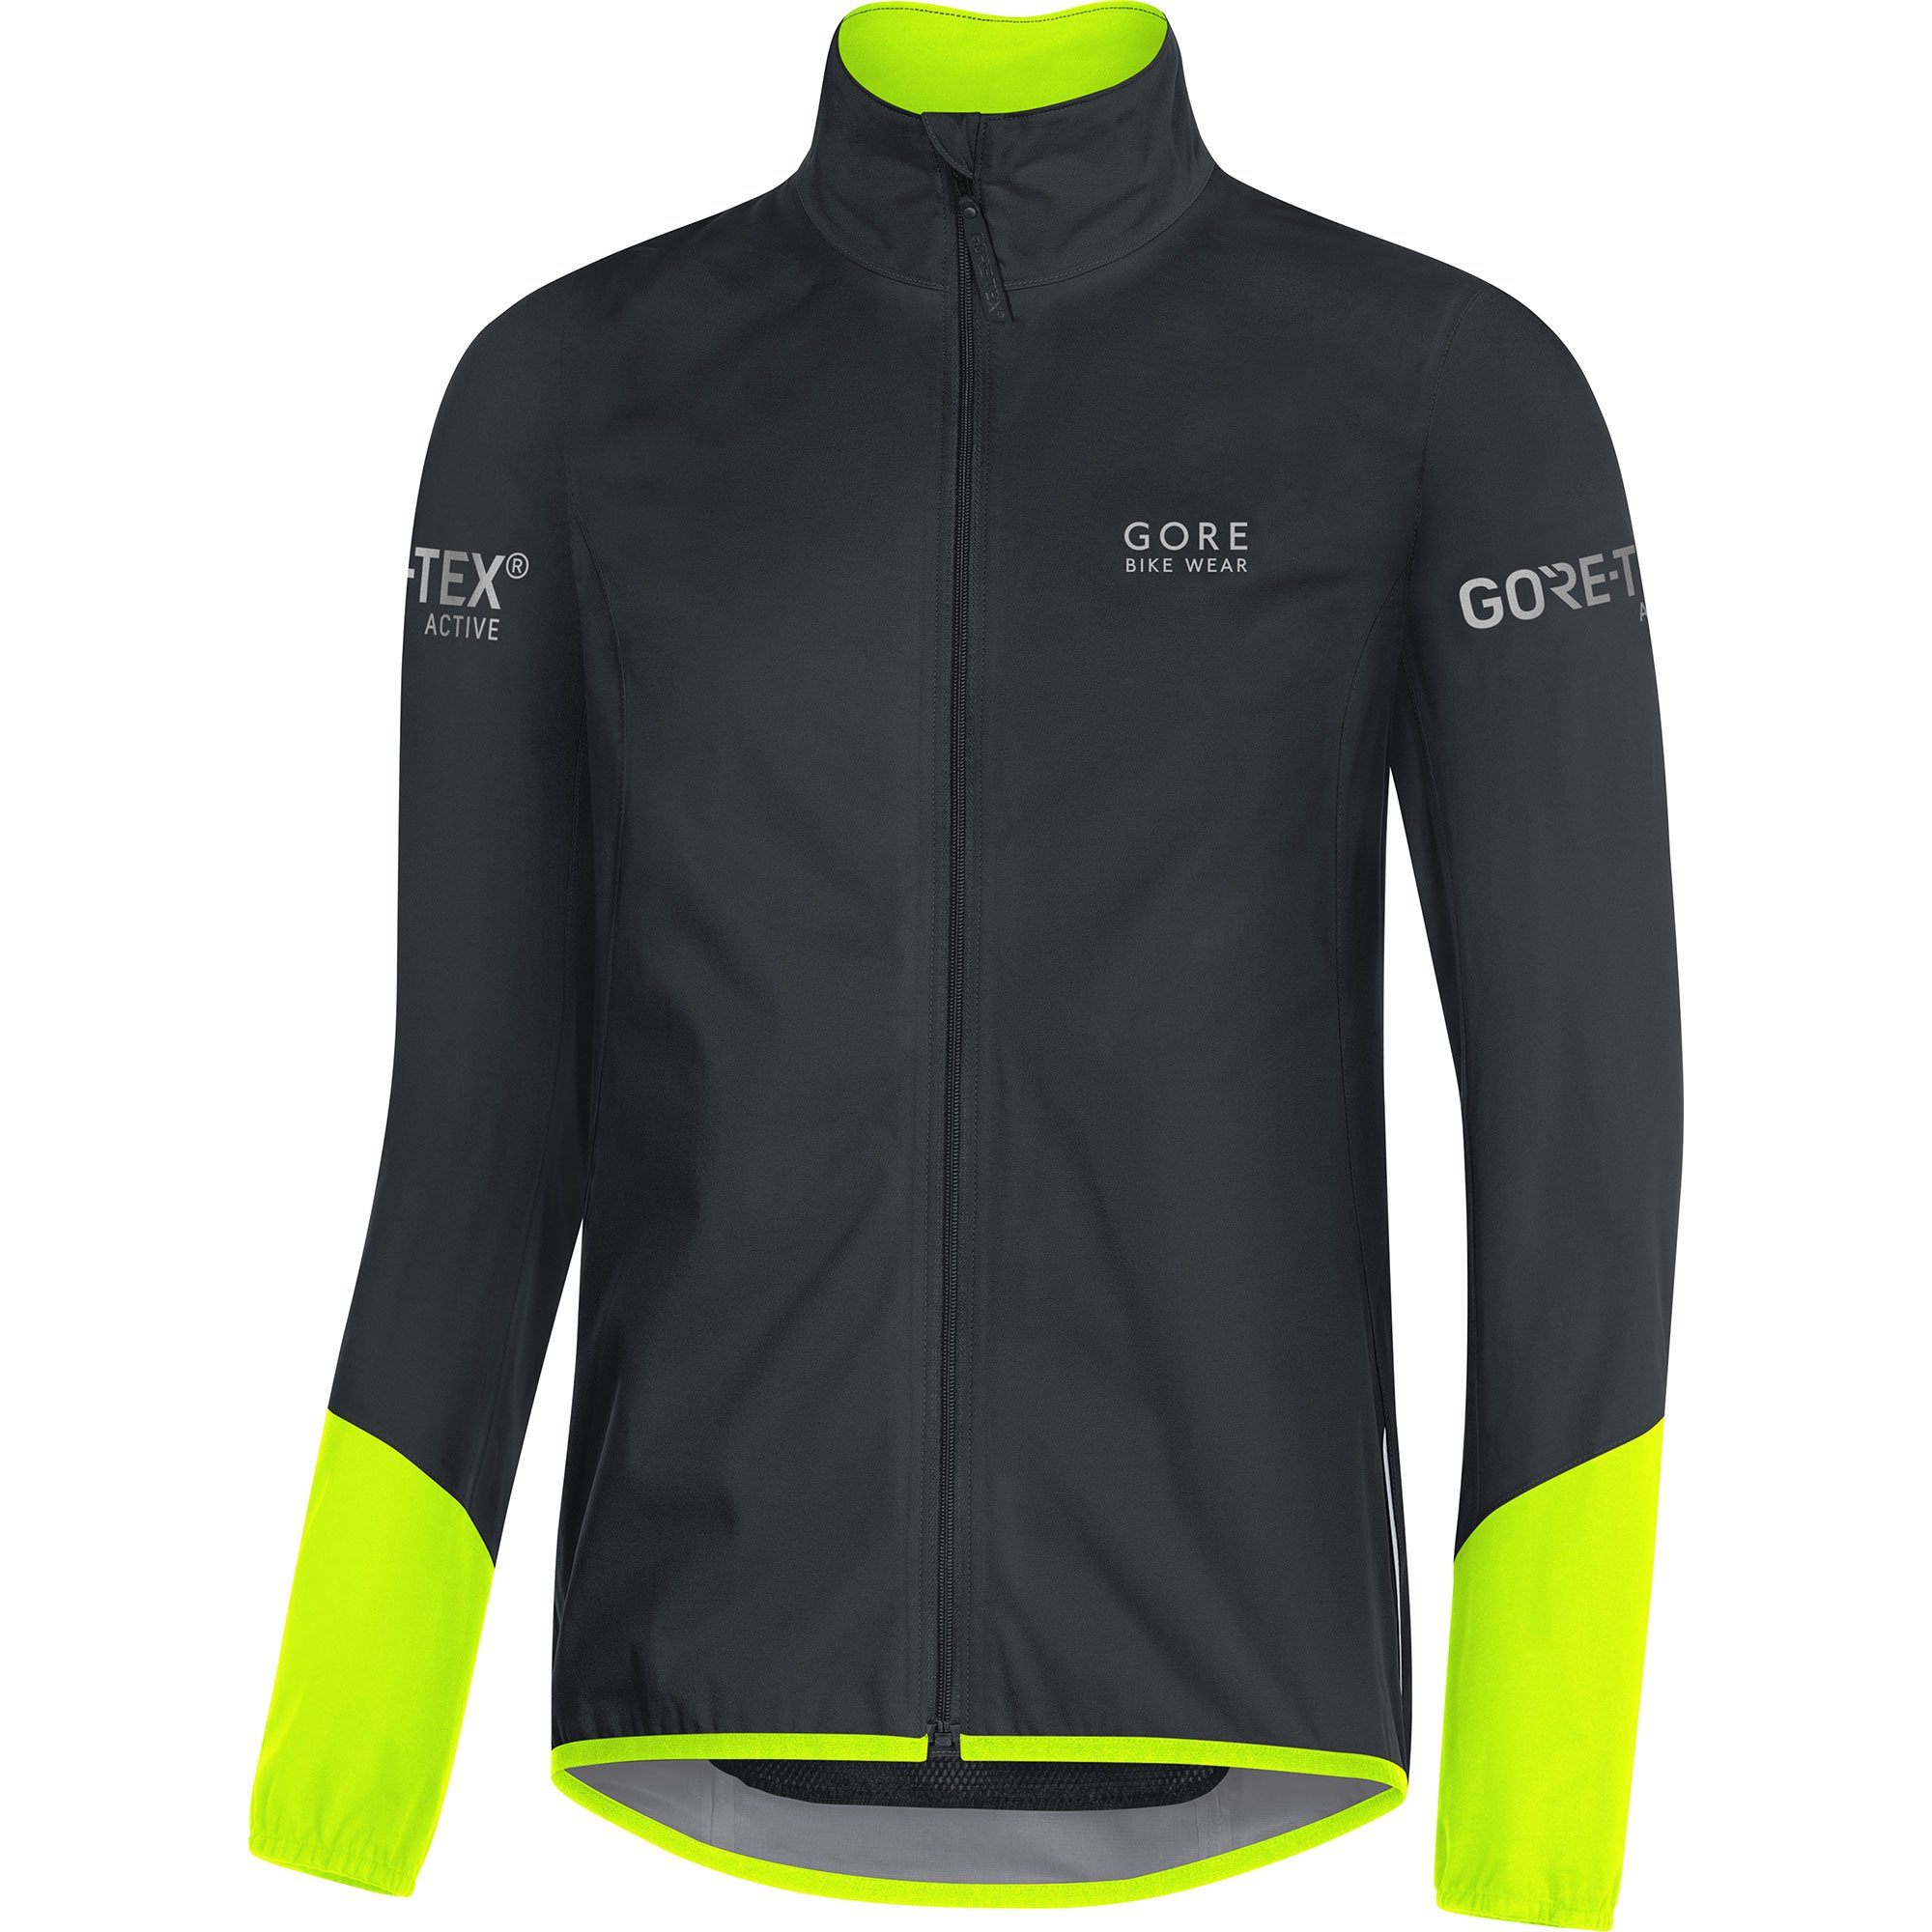 Gore Bike Wear, Chaqueta para Ciclismo en Carretera, Hombre, Tex Active, Power